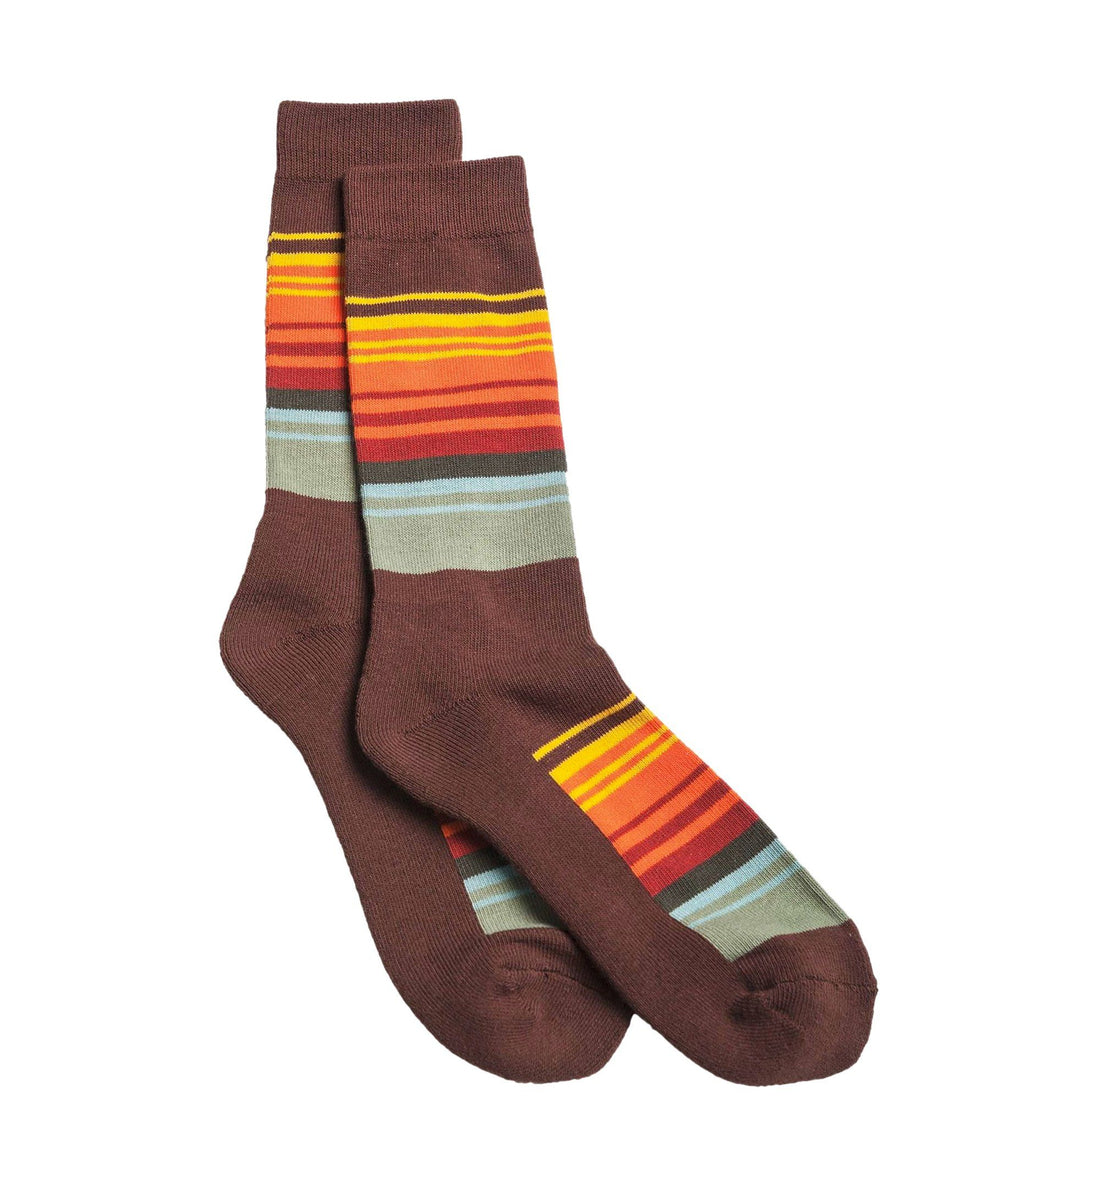 Pendleton National Park Crew Sock - Socks/Underwear - Iron and Resin